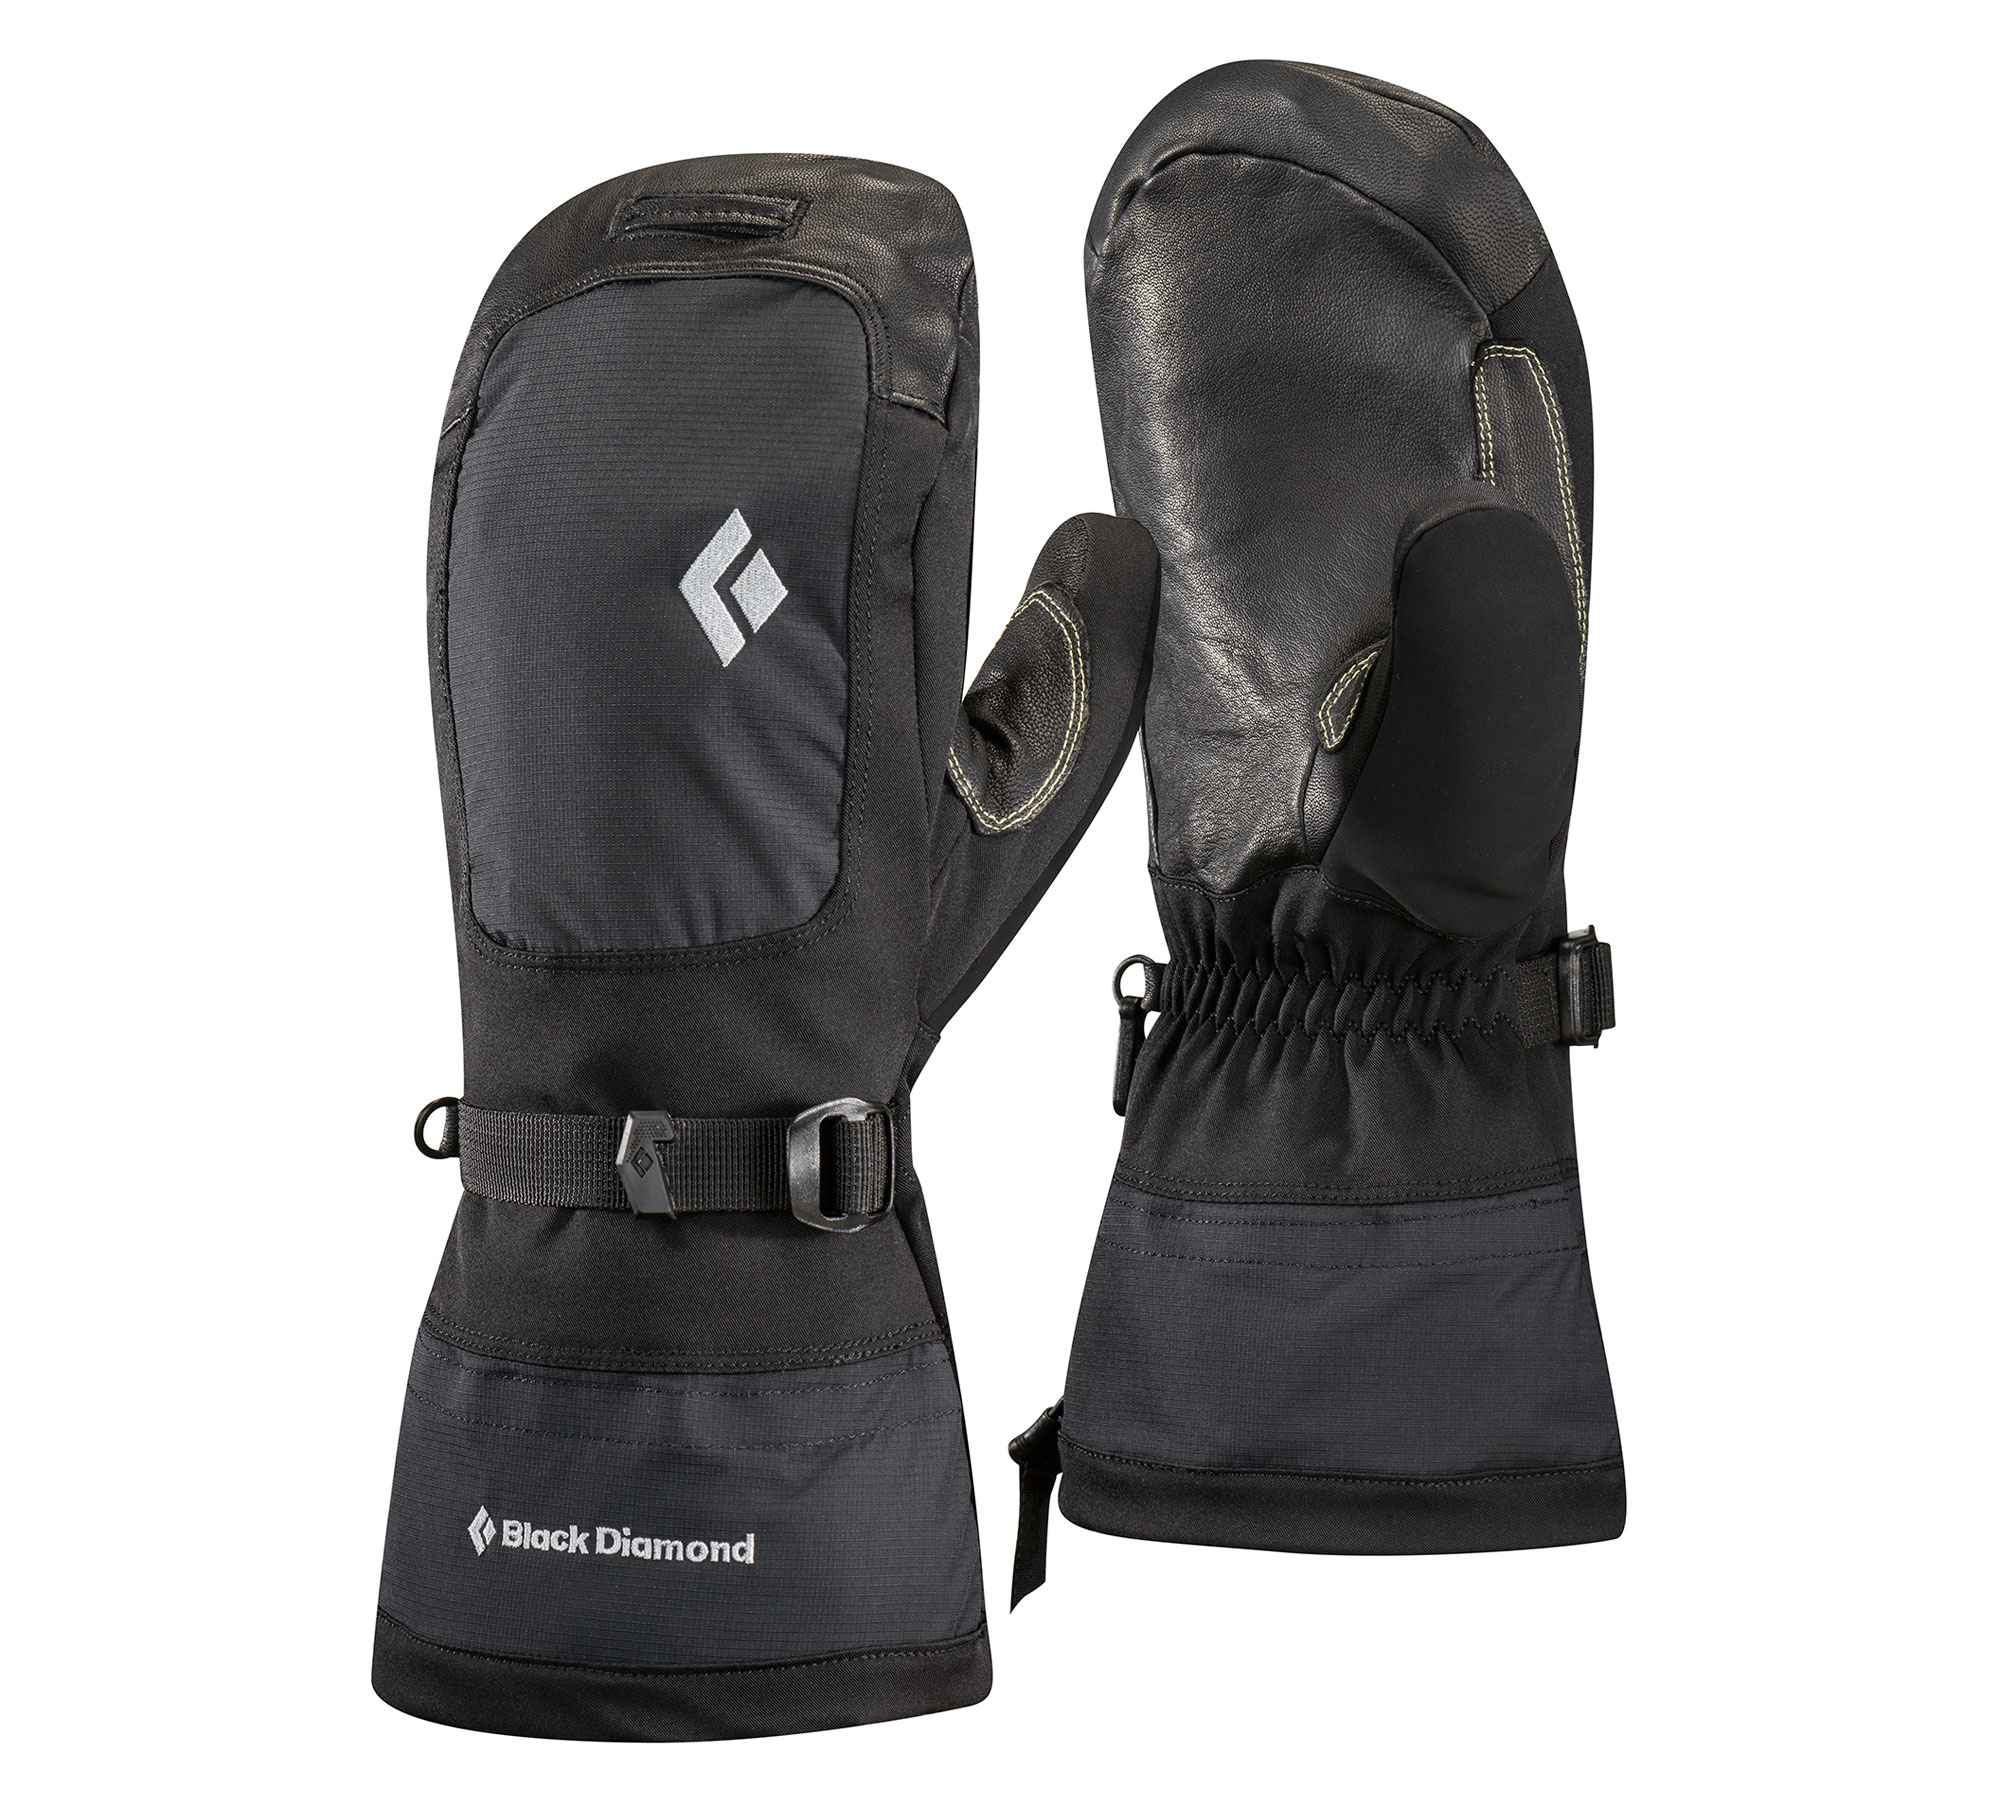 Black Diamond Mercury Insulated Mittens